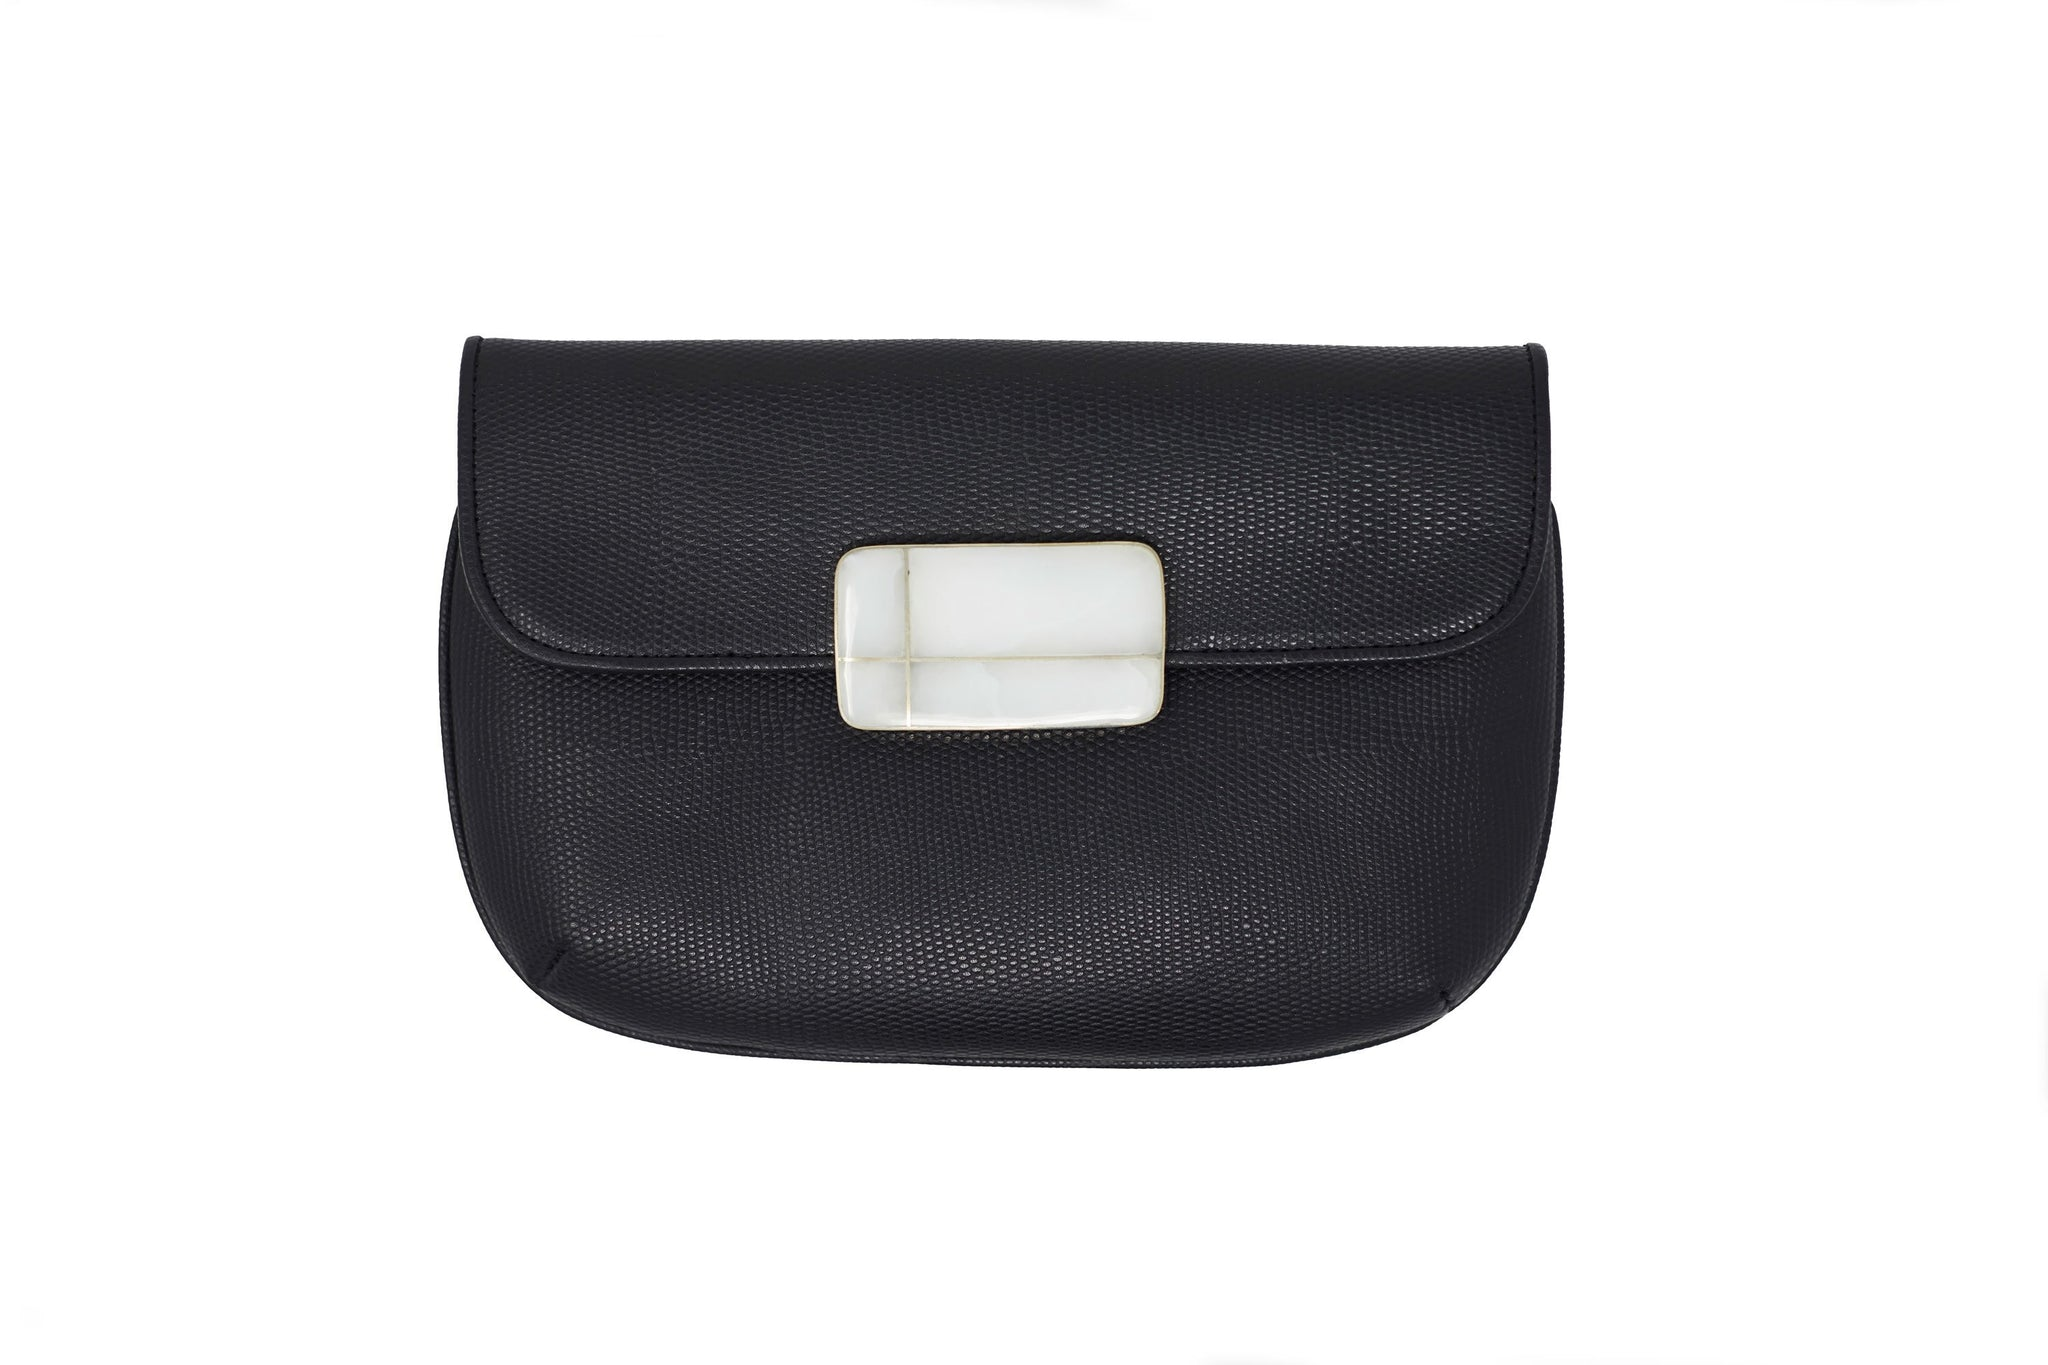 Black Nite Leather Clutch Wristlet - Lesetta